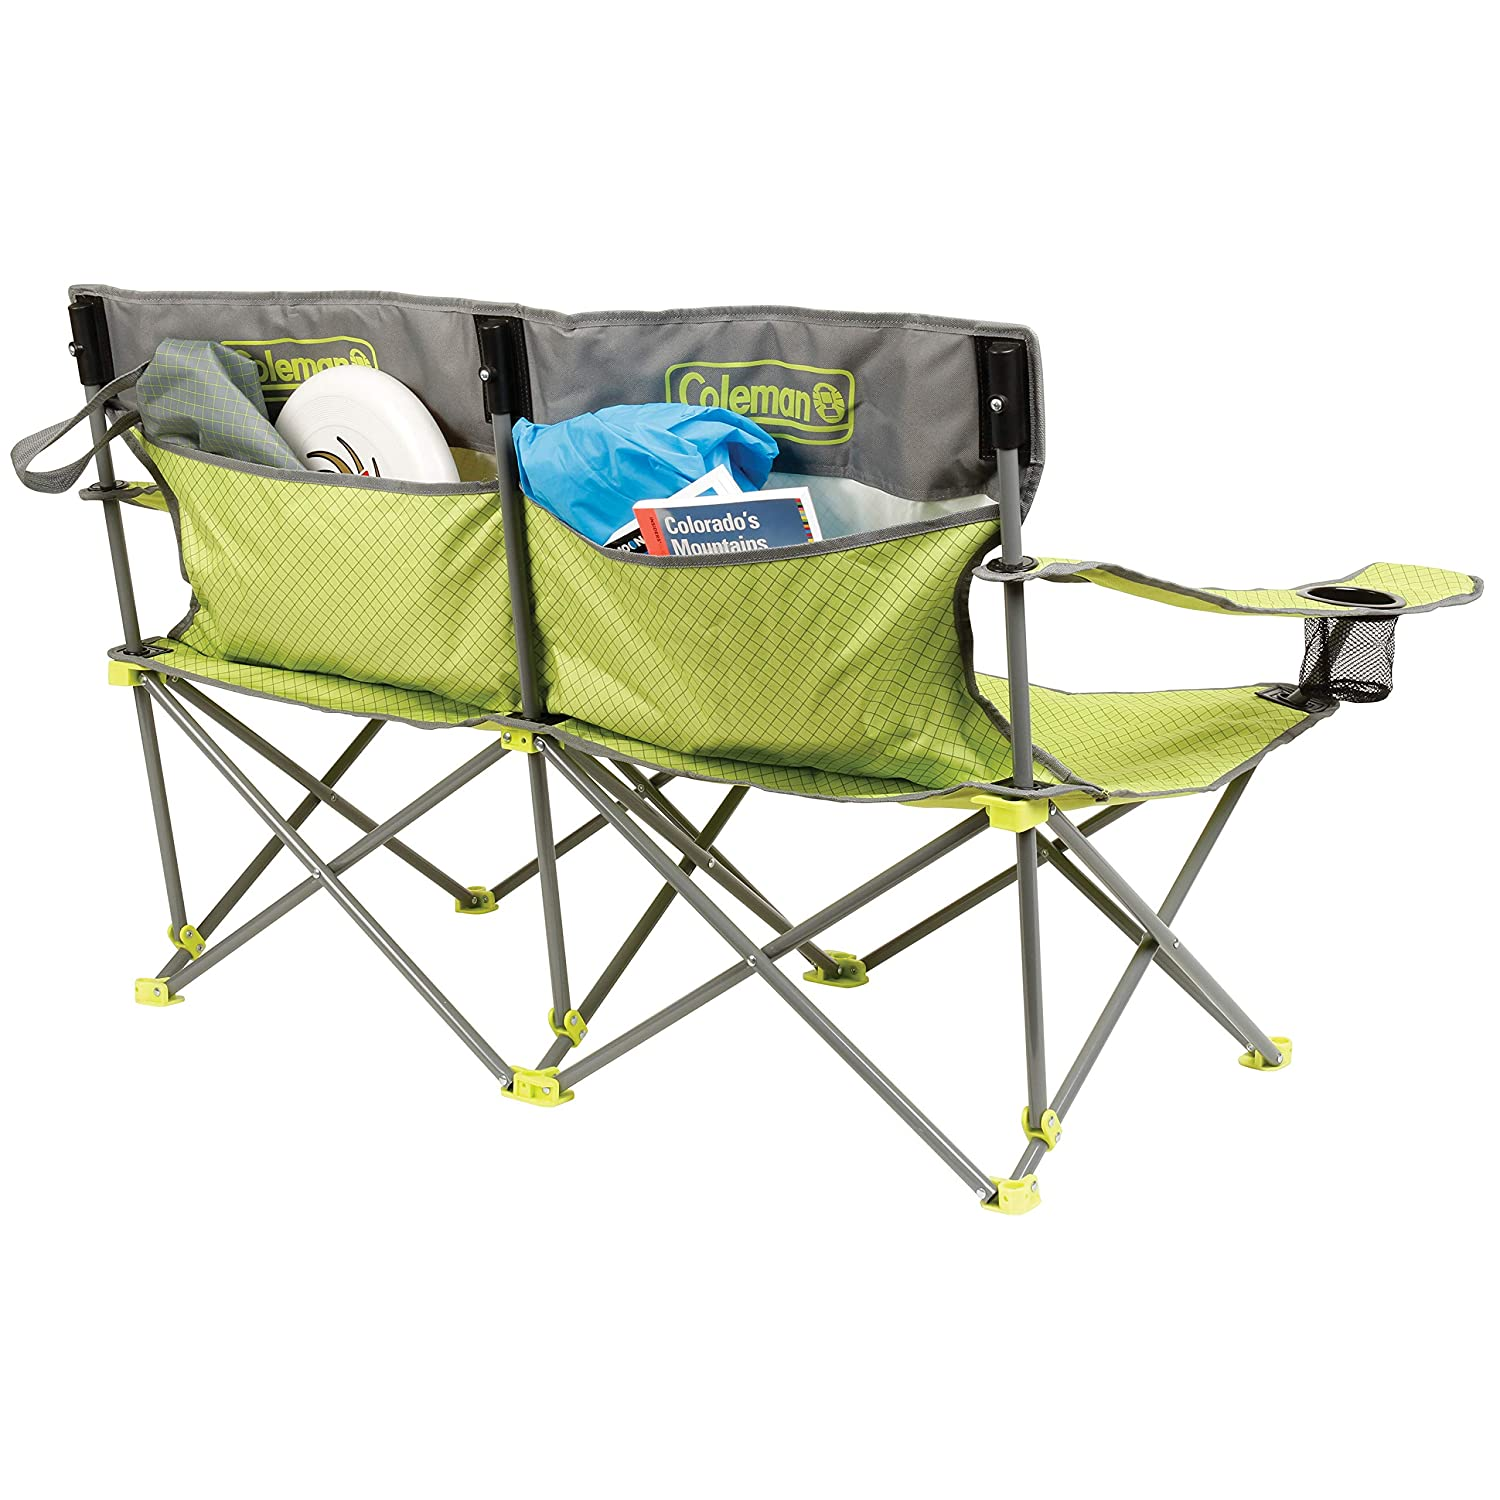 Coleman 2000019354 Quattro Lax Double Quad Chair The Coleman Company Inc.